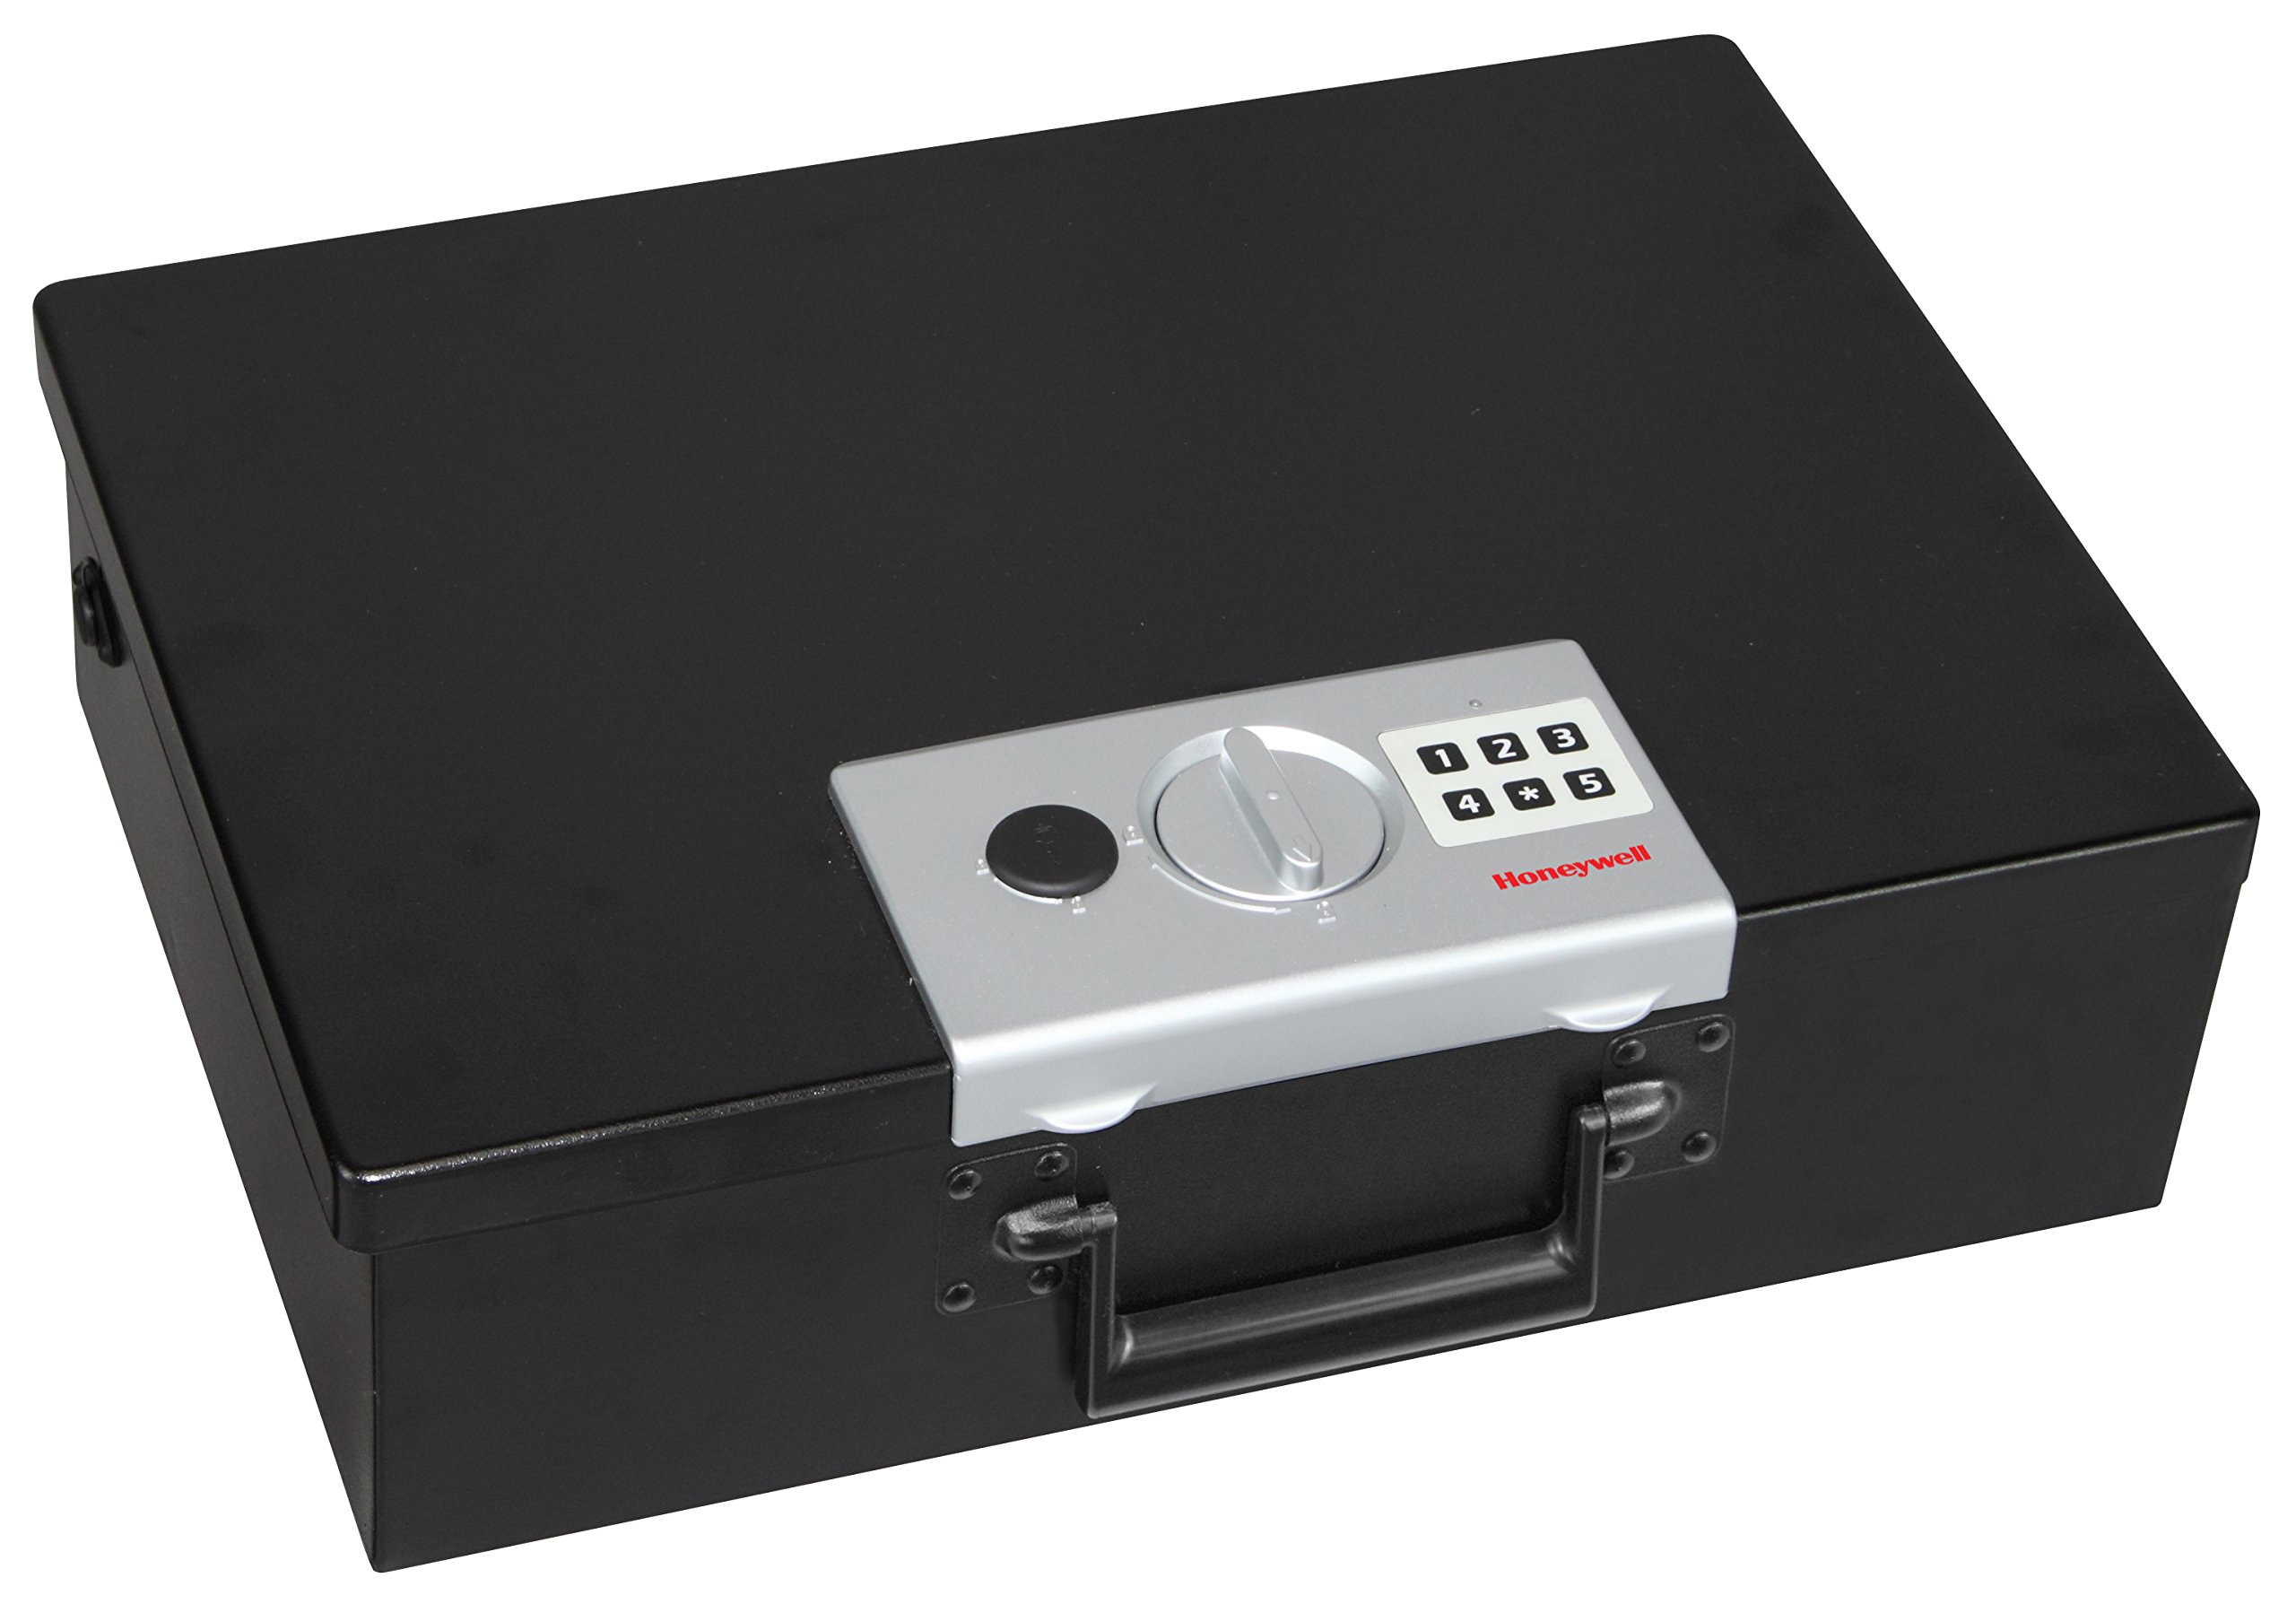 HONEYWELL - 6110 Large Fire Resistant Steel Security Safe Box with Digital Lock, 0.48-Cubic Feet, Black